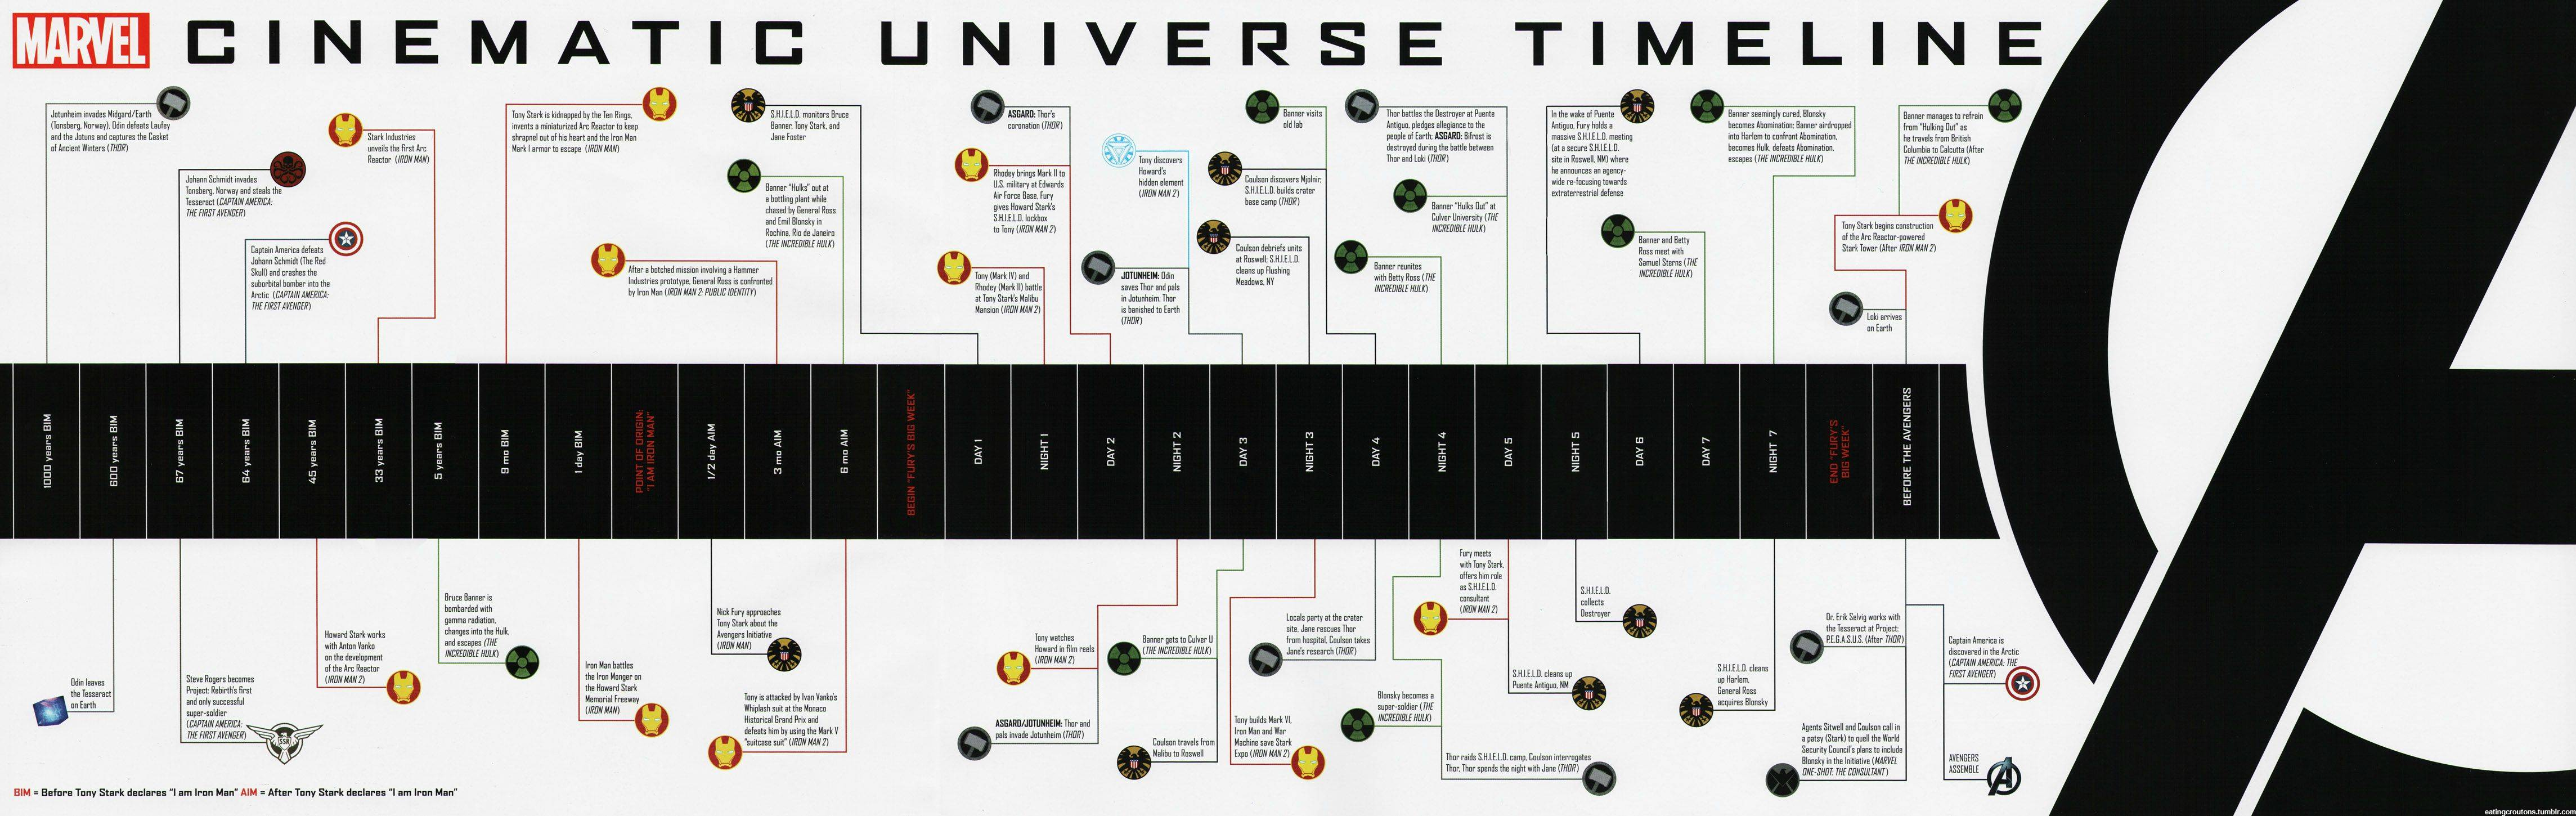 Marvel-Movie-Universe